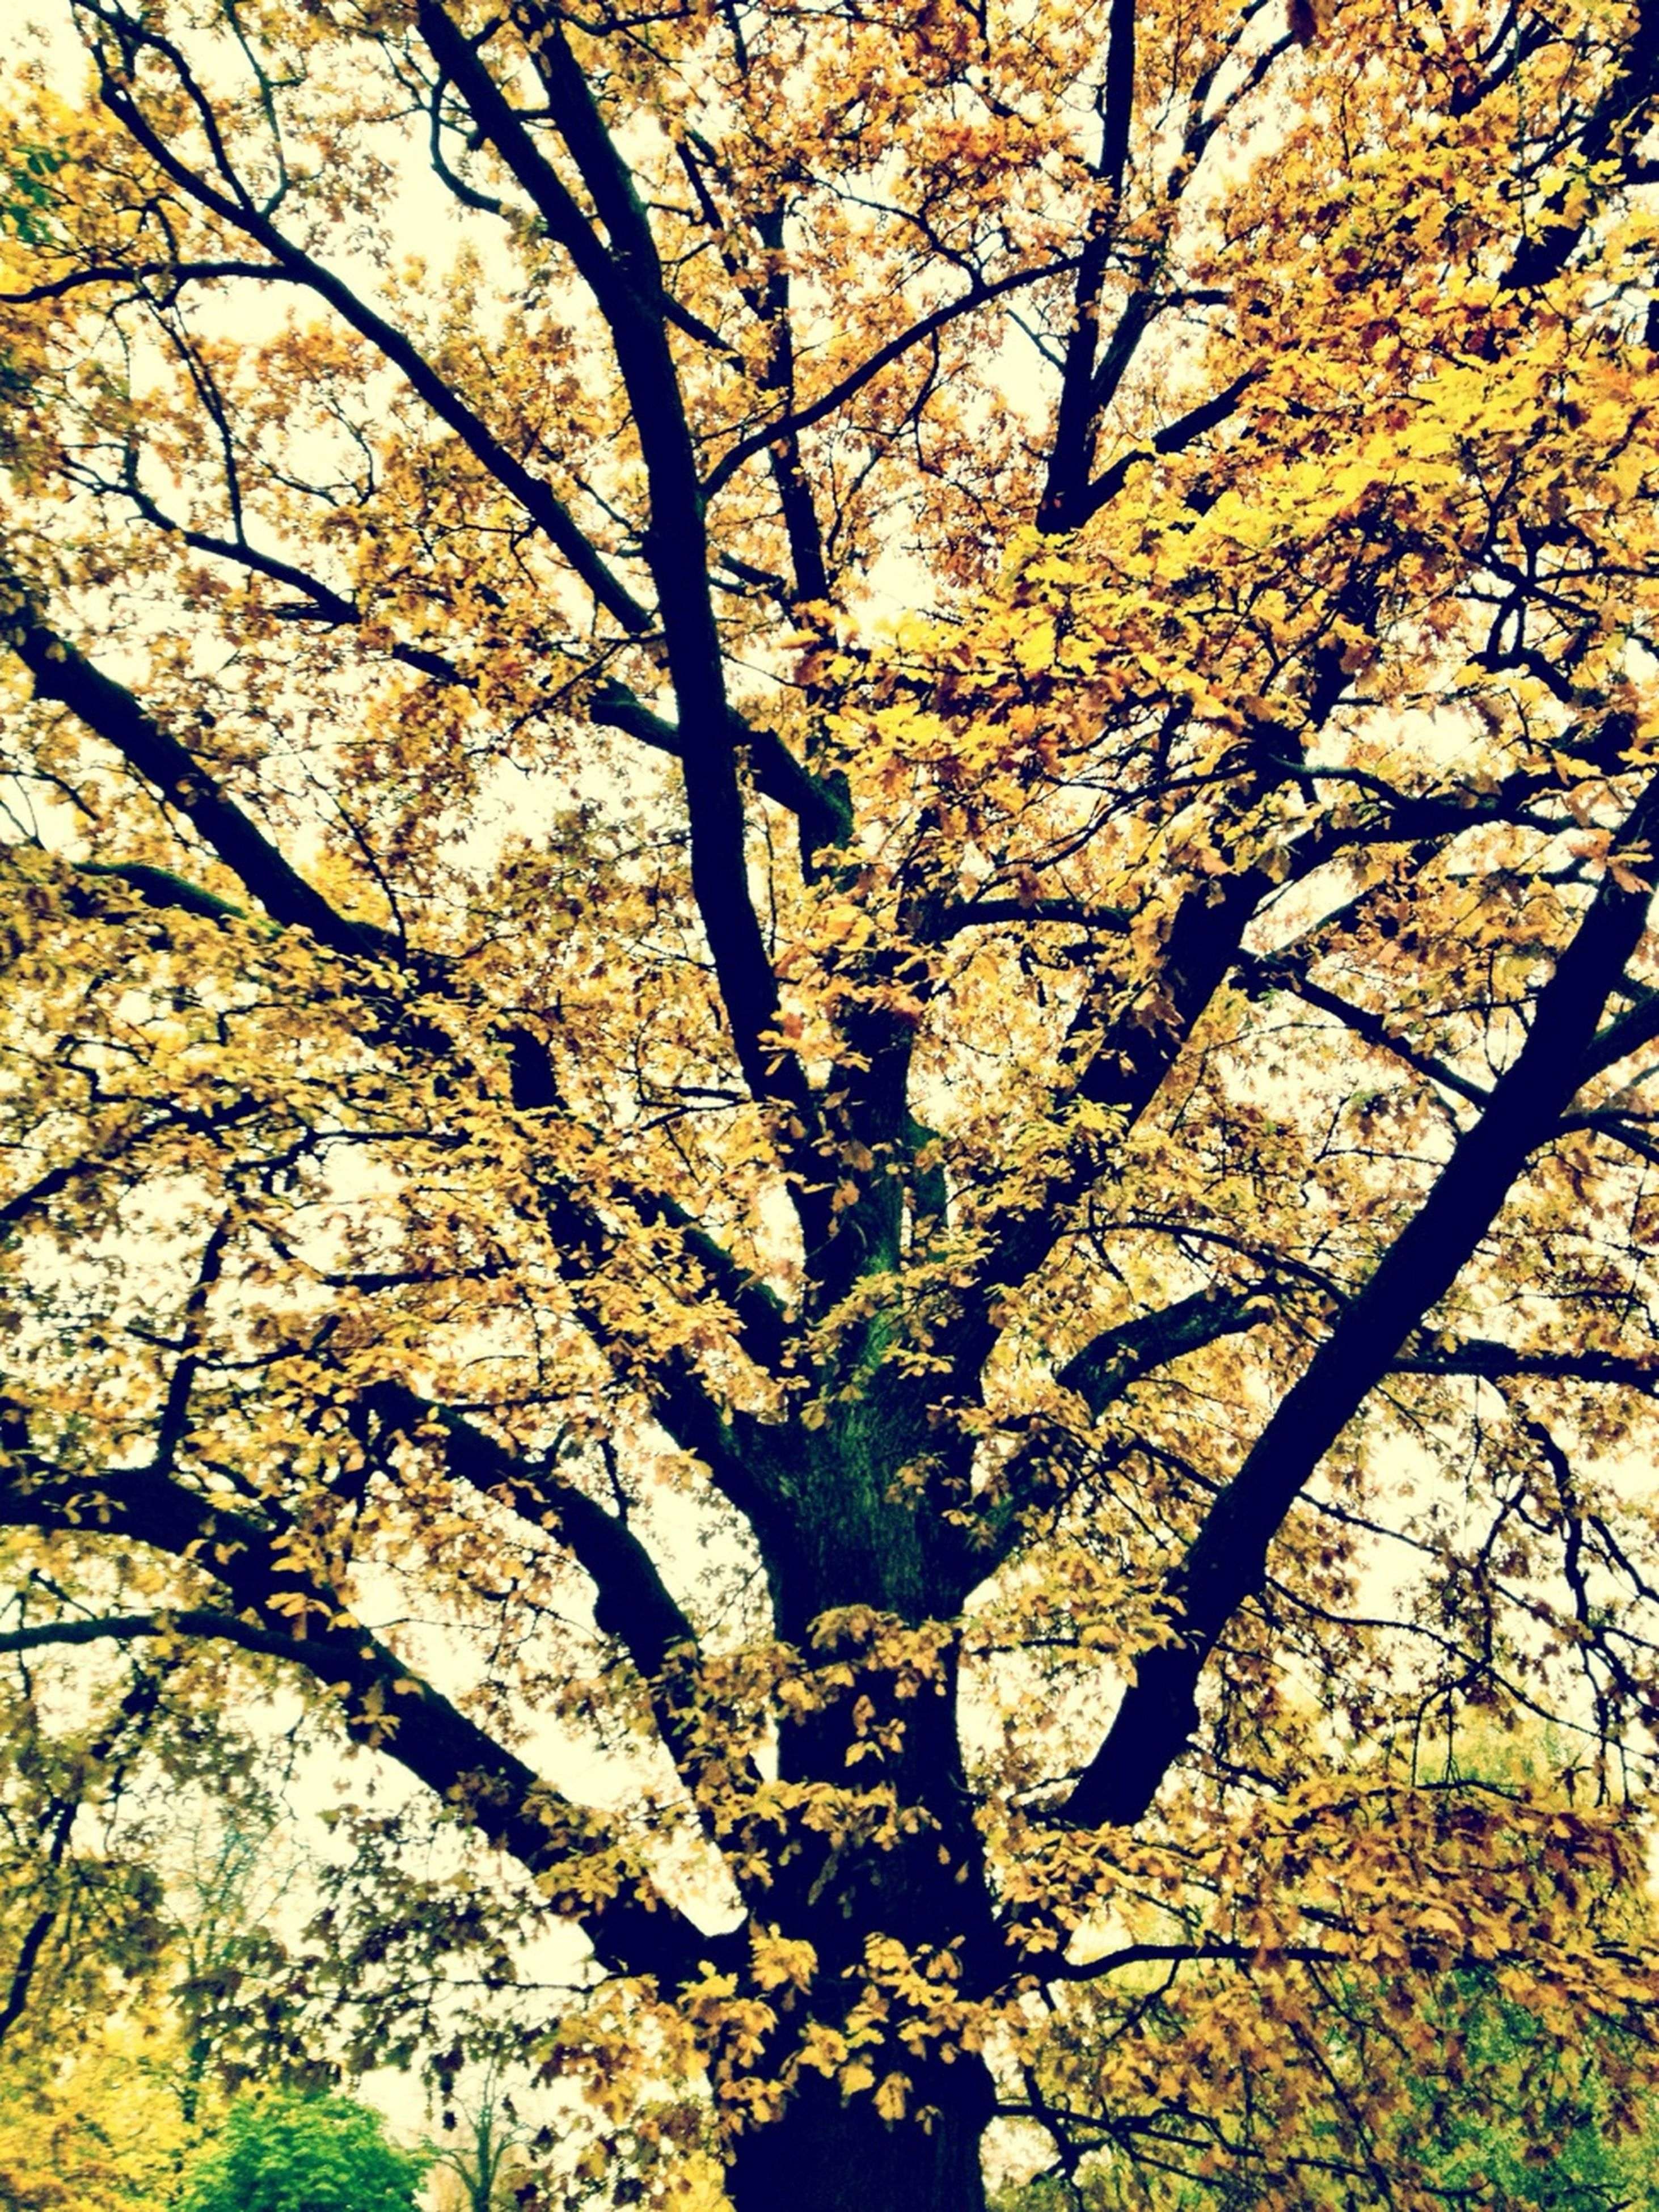 tree, branch, low angle view, growth, autumn, nature, beauty in nature, change, tranquility, yellow, season, tree trunk, scenics, outdoors, full frame, day, no people, backgrounds, leaf, sunlight